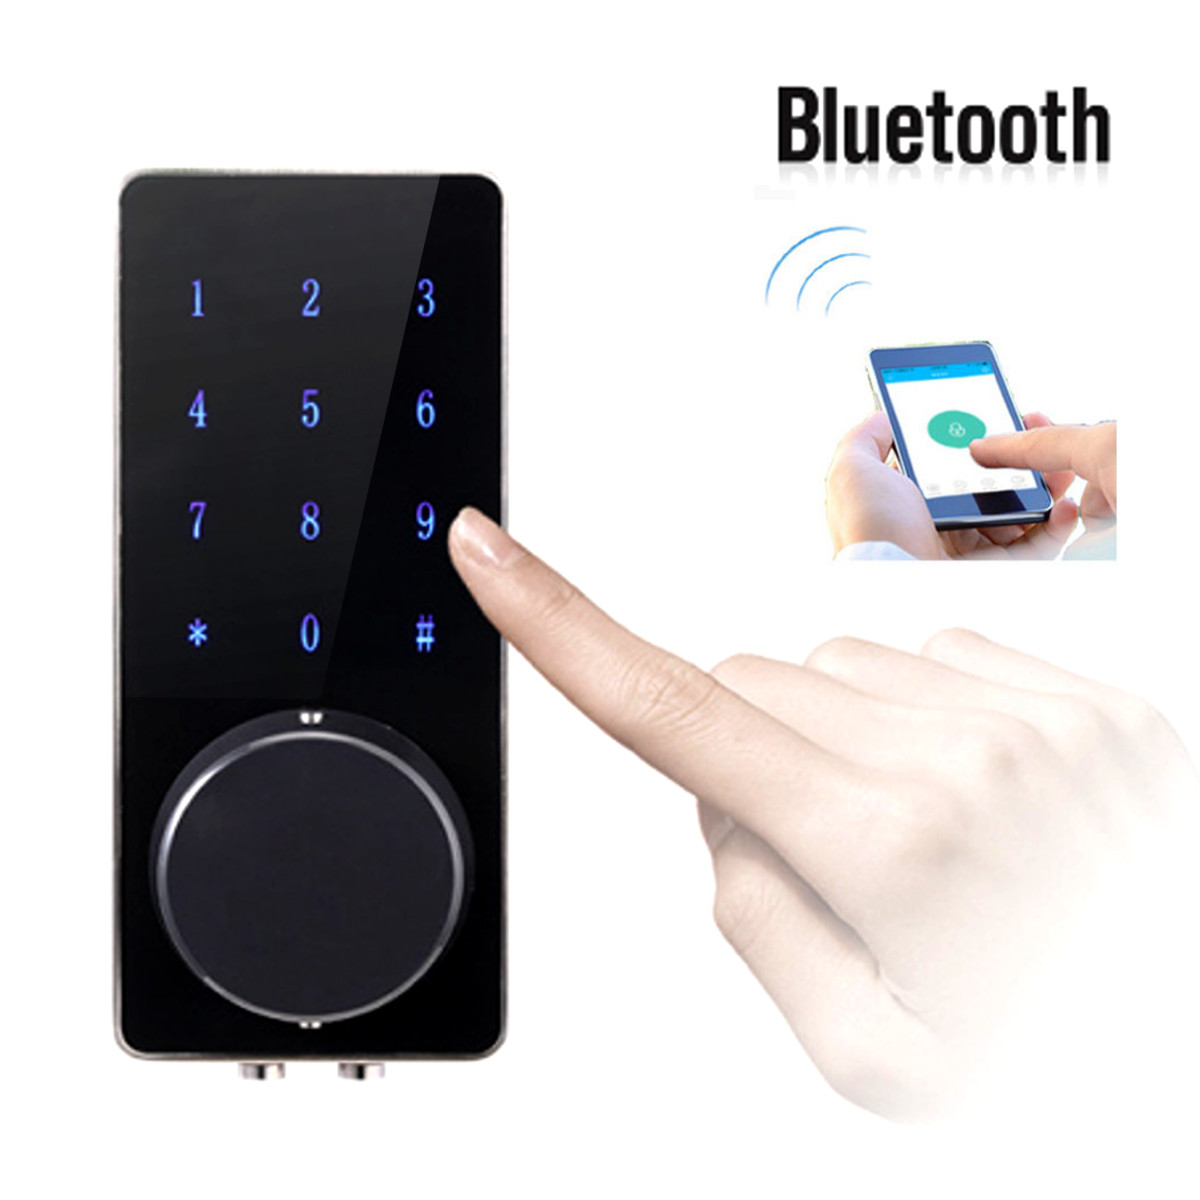 Electronic Bluetooth Smartcode Digital Door Lock Keyless Touch Password Deadbolt  For Hotel and Apartment gtf 2pcs 18650 battery 3 7v lithium batteries 6800mah capacity power bank light for torch flashlight rechargeable battery